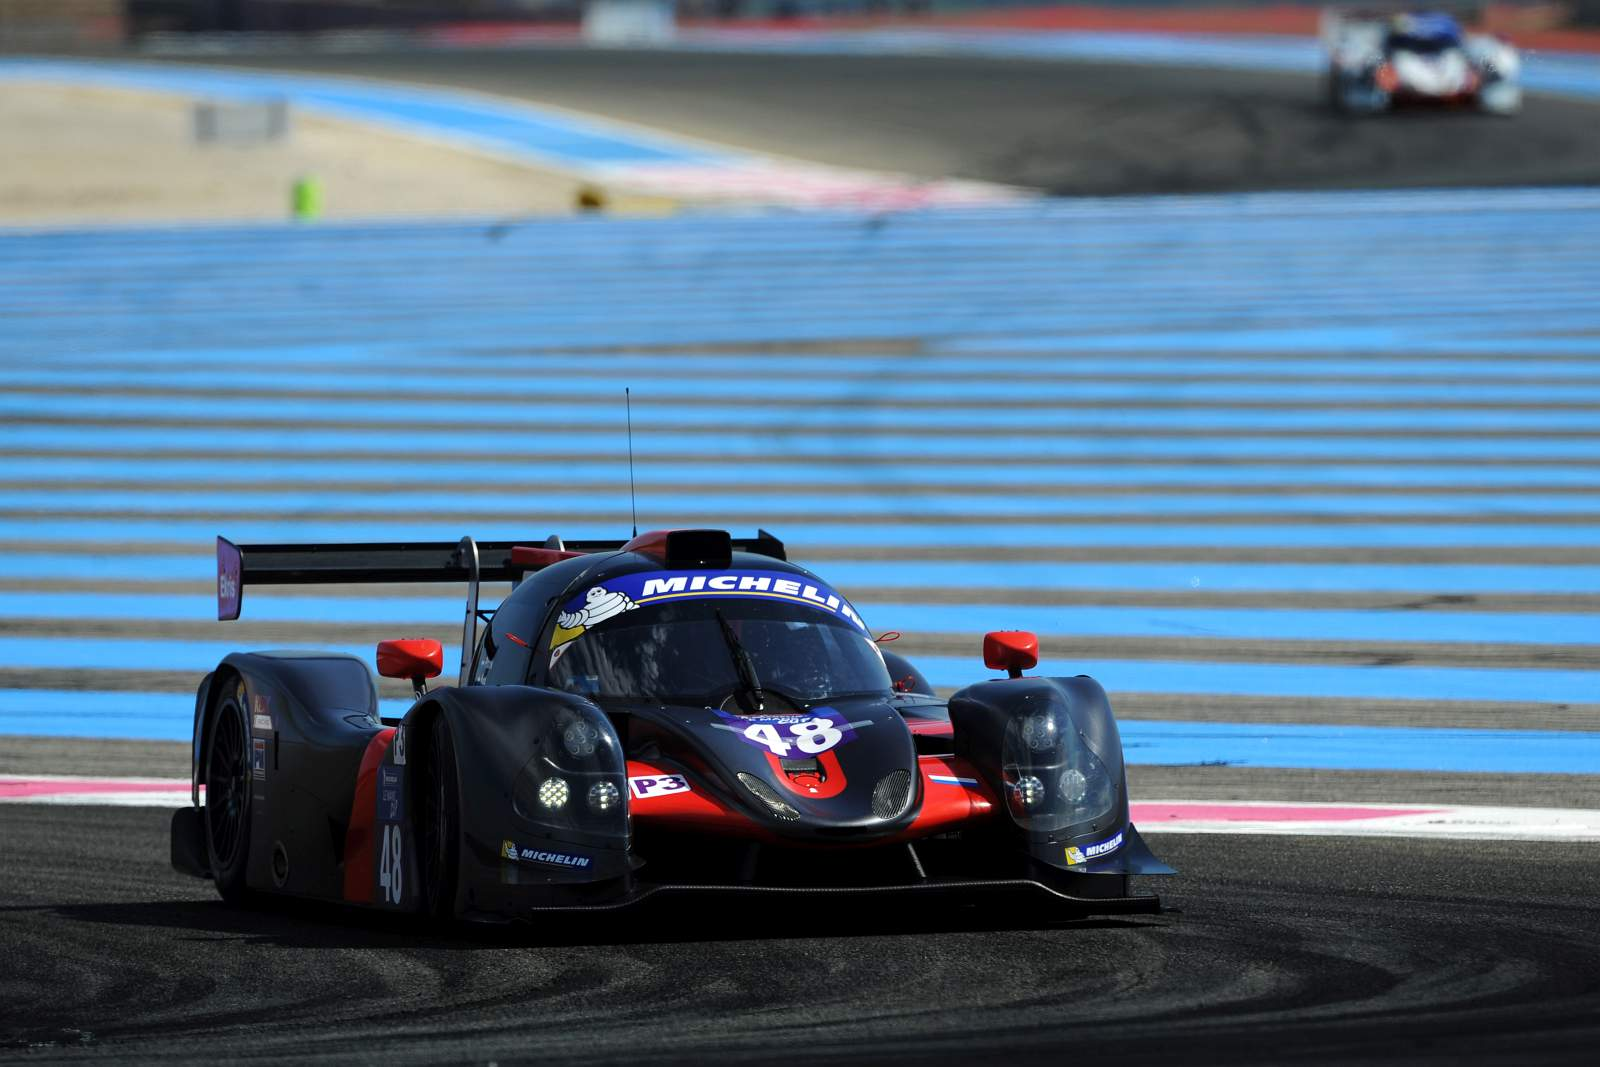 kox-racing-road-to-le-mans-lmp3-002